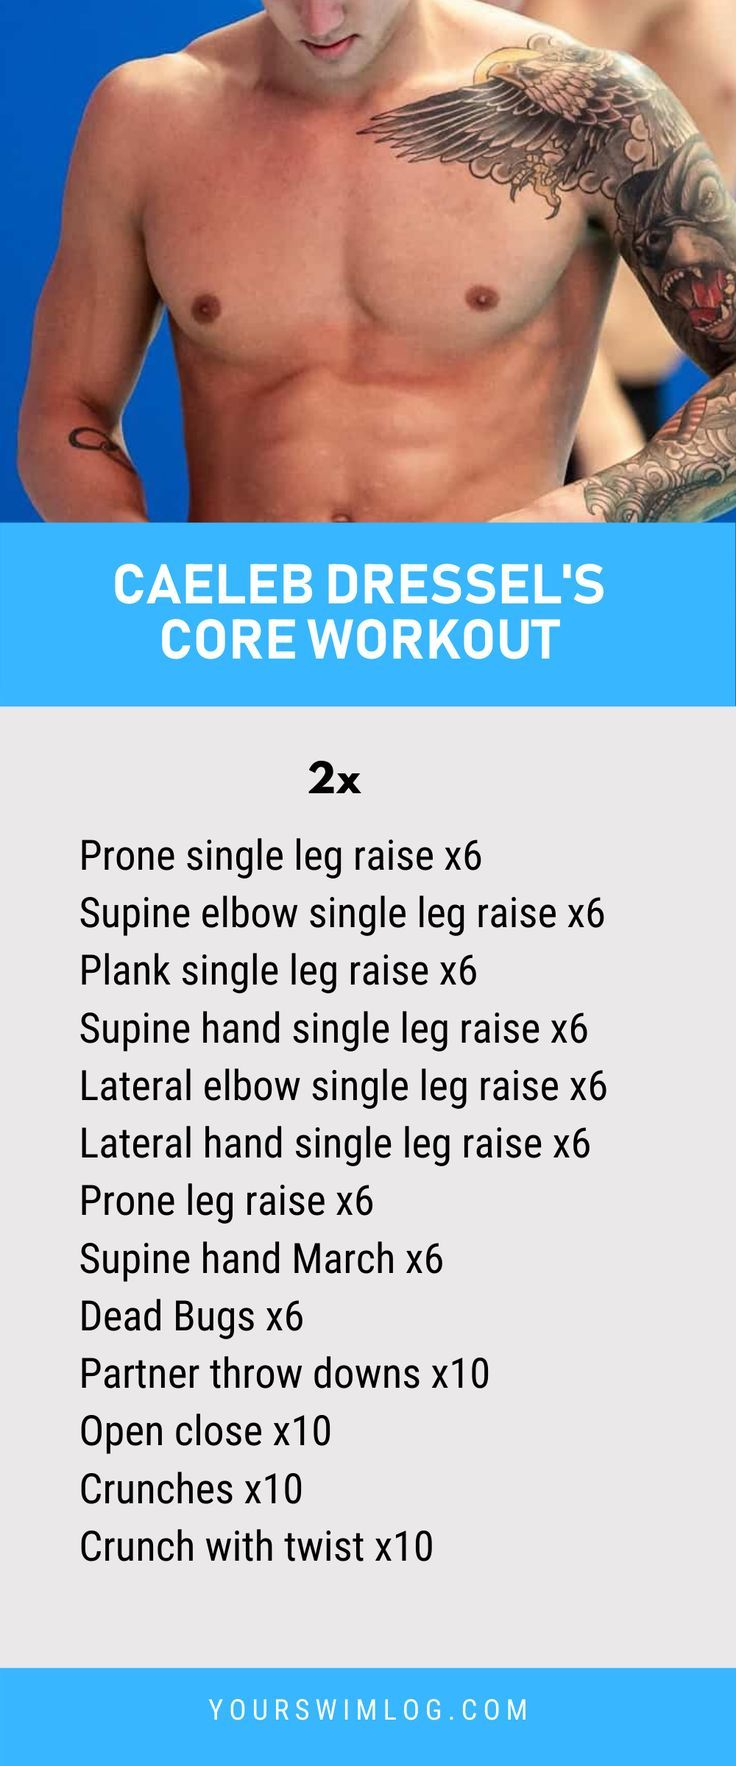 Caeleb Dressel Core Workouts